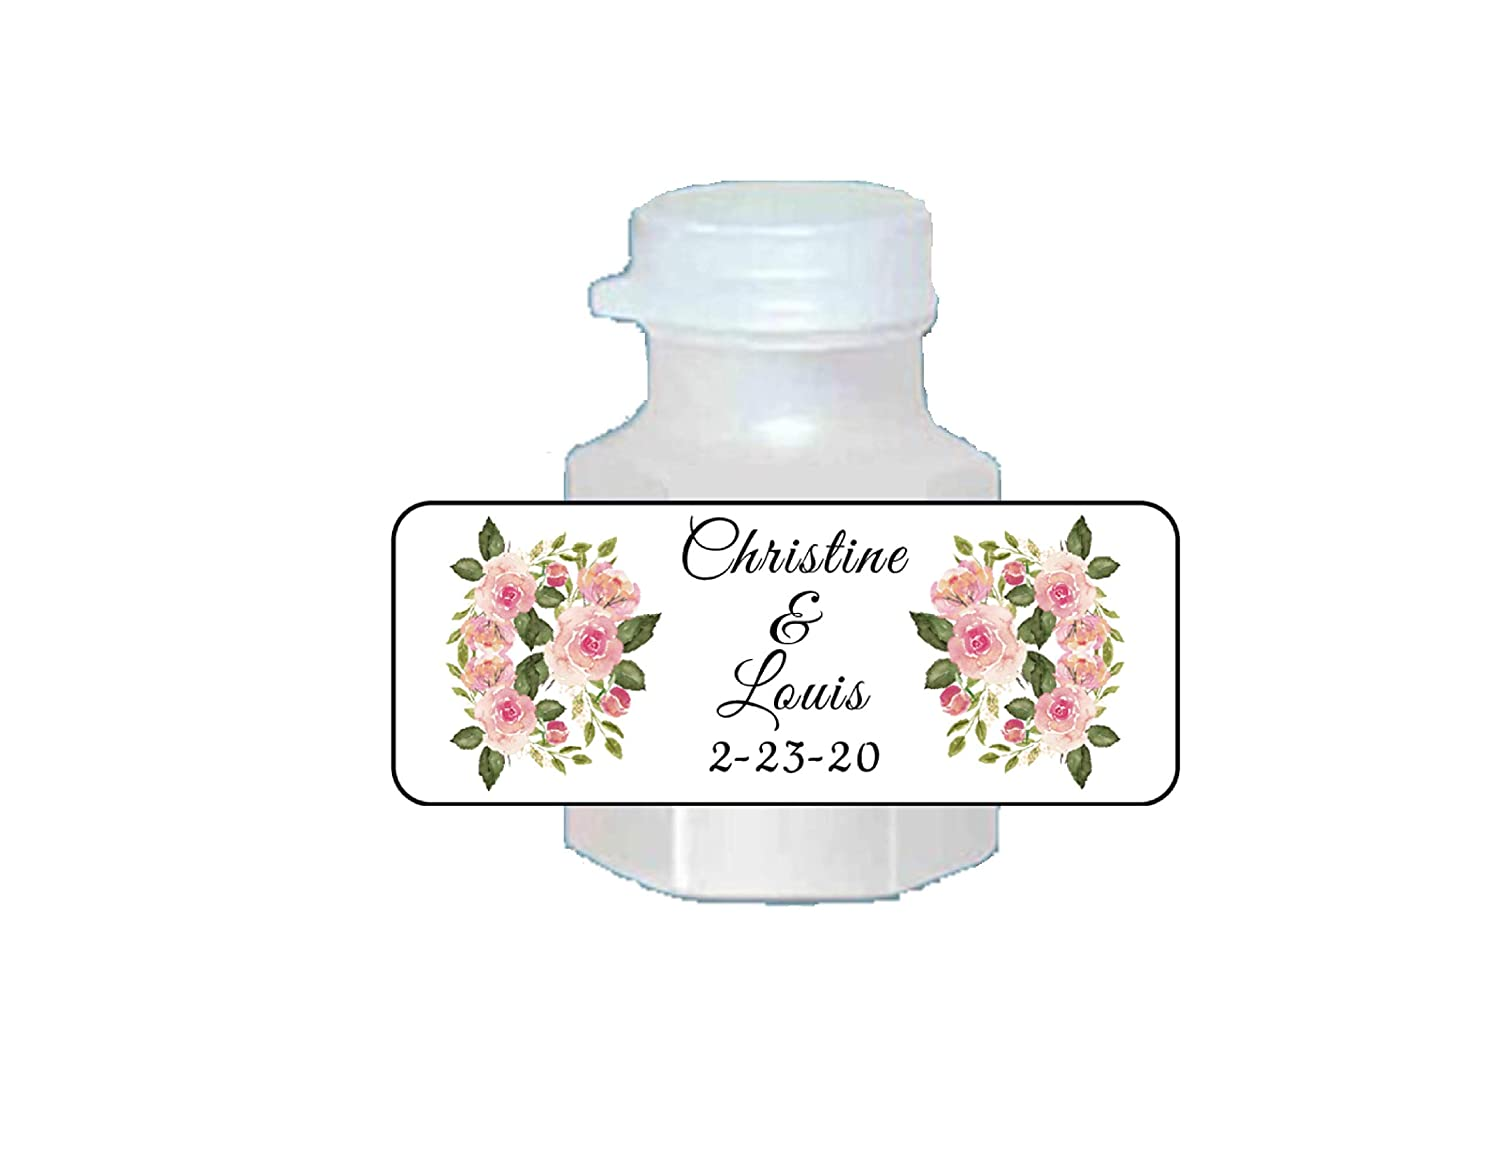 120 BEAUTIFUL Fleur De Lis Mini Bubble labelsstickers Personalized for Wedding Birthday or any PartyEvent Make your own cute favors!